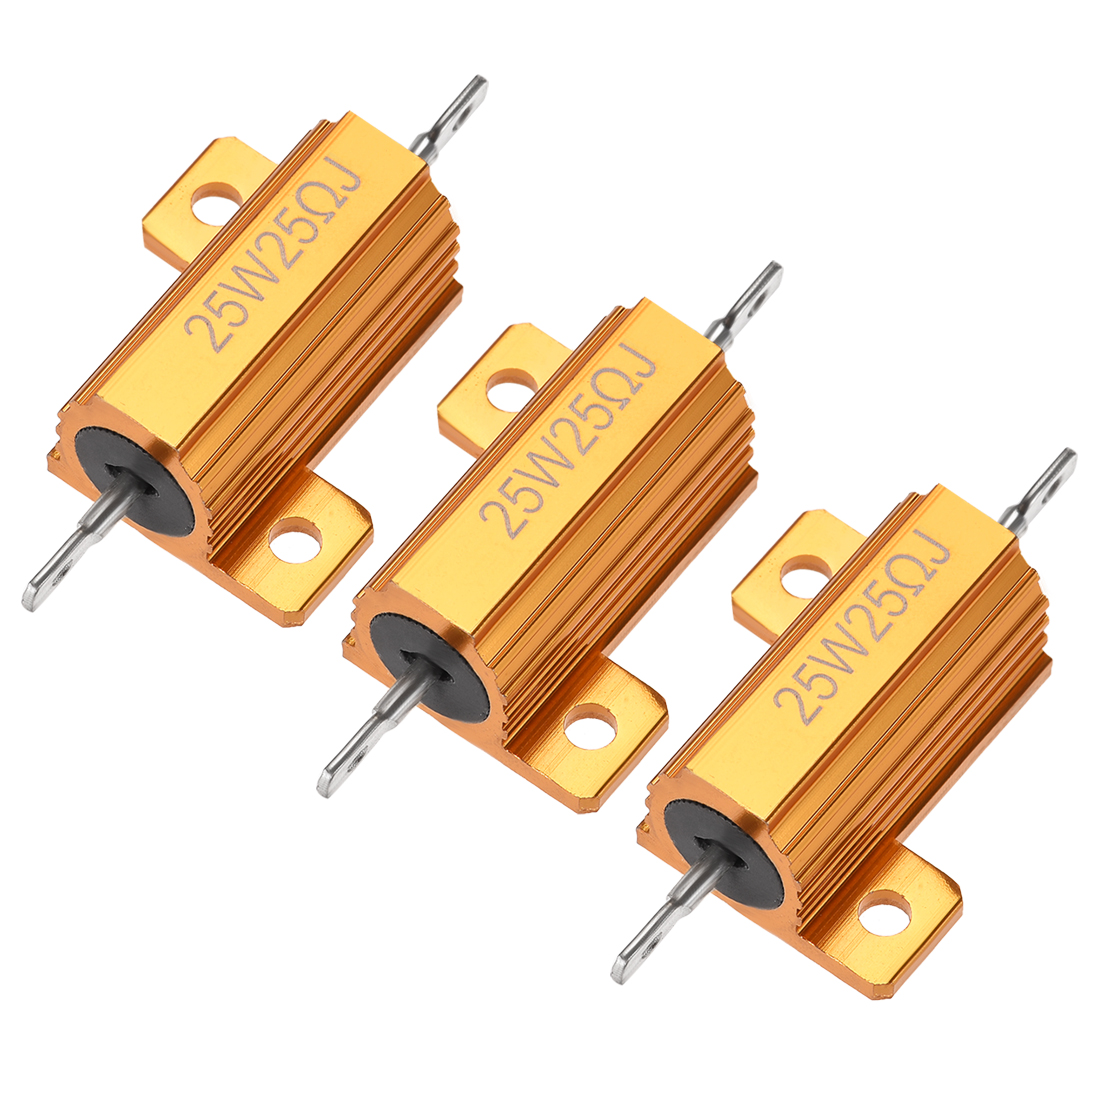 25W 25 Ohm 5% Aluminum Housing Resistor Wirewound Resistor Gold Tone 3 Pcs